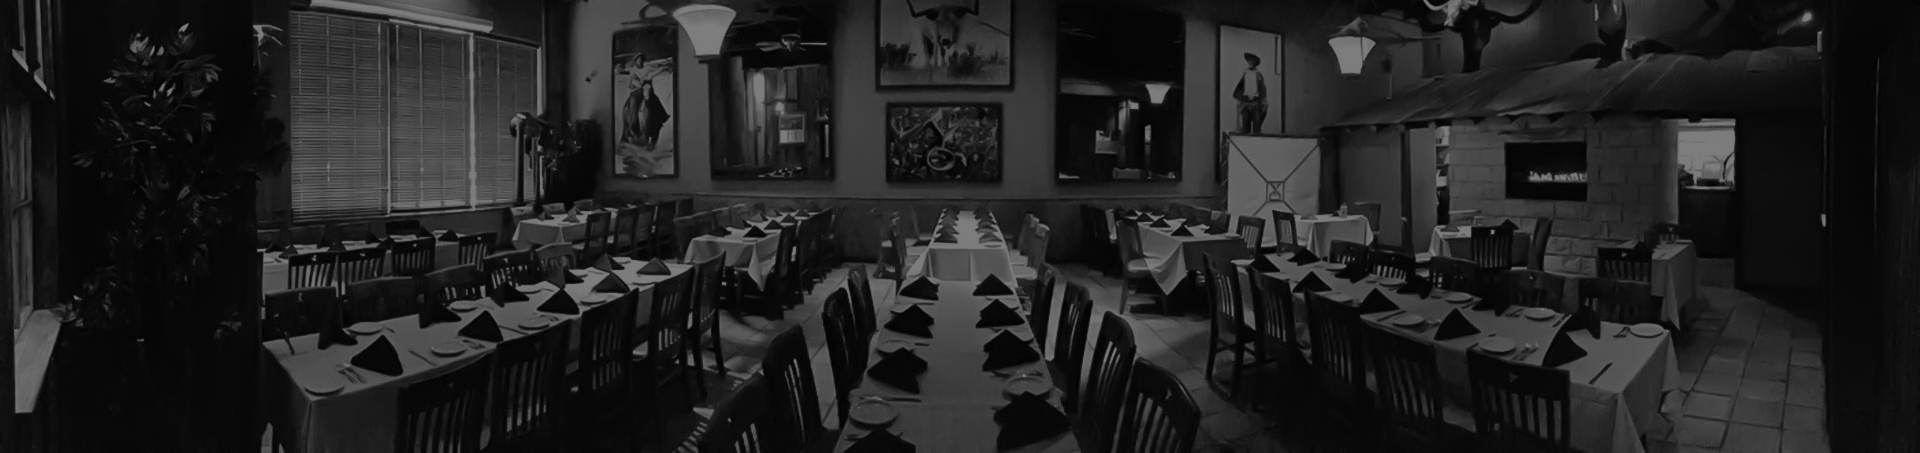 Private dining rooms in dallas banquet halls wedding for Best private dining rooms dallas